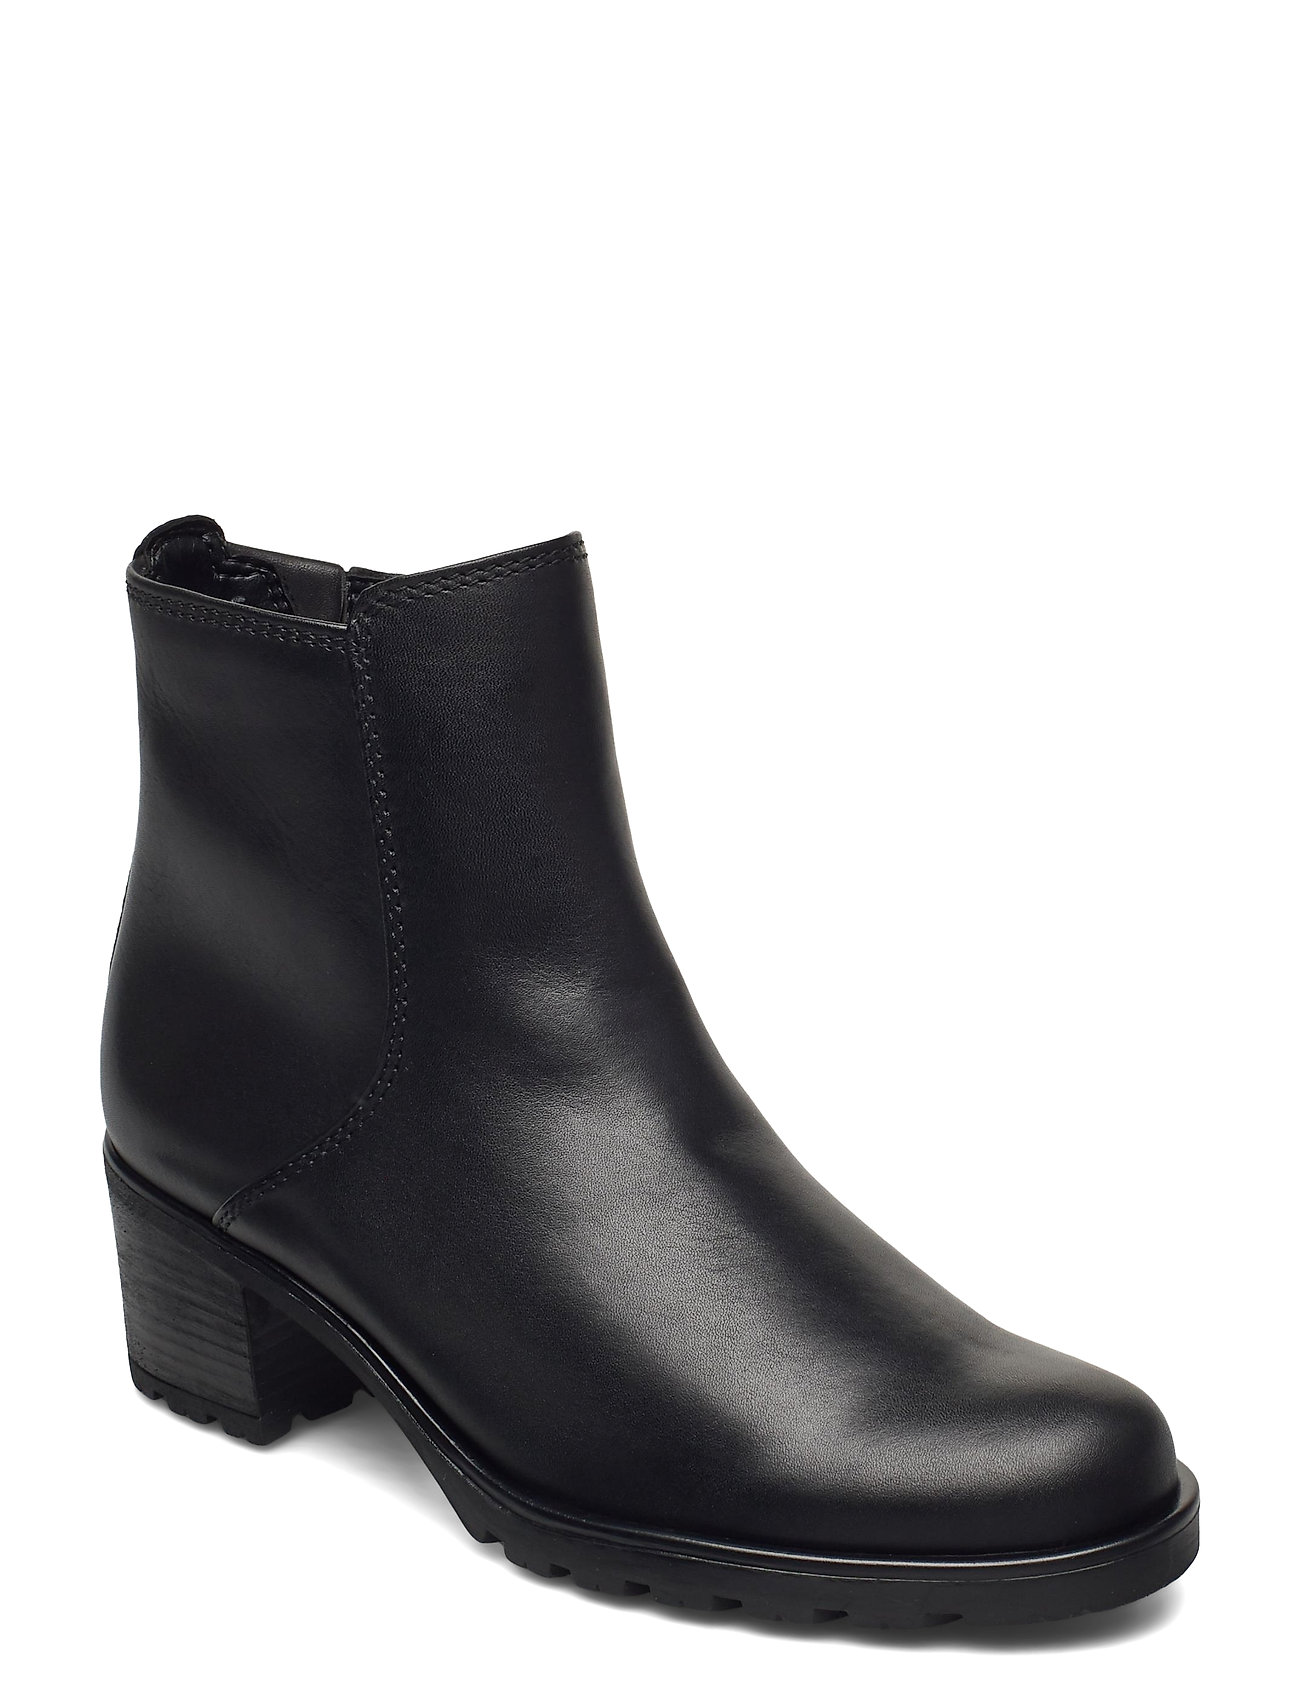 Image of Ankle Boot Shoes Boots Ankle Boots Ankle Boot - Heel Sort Gabor (3462700093)